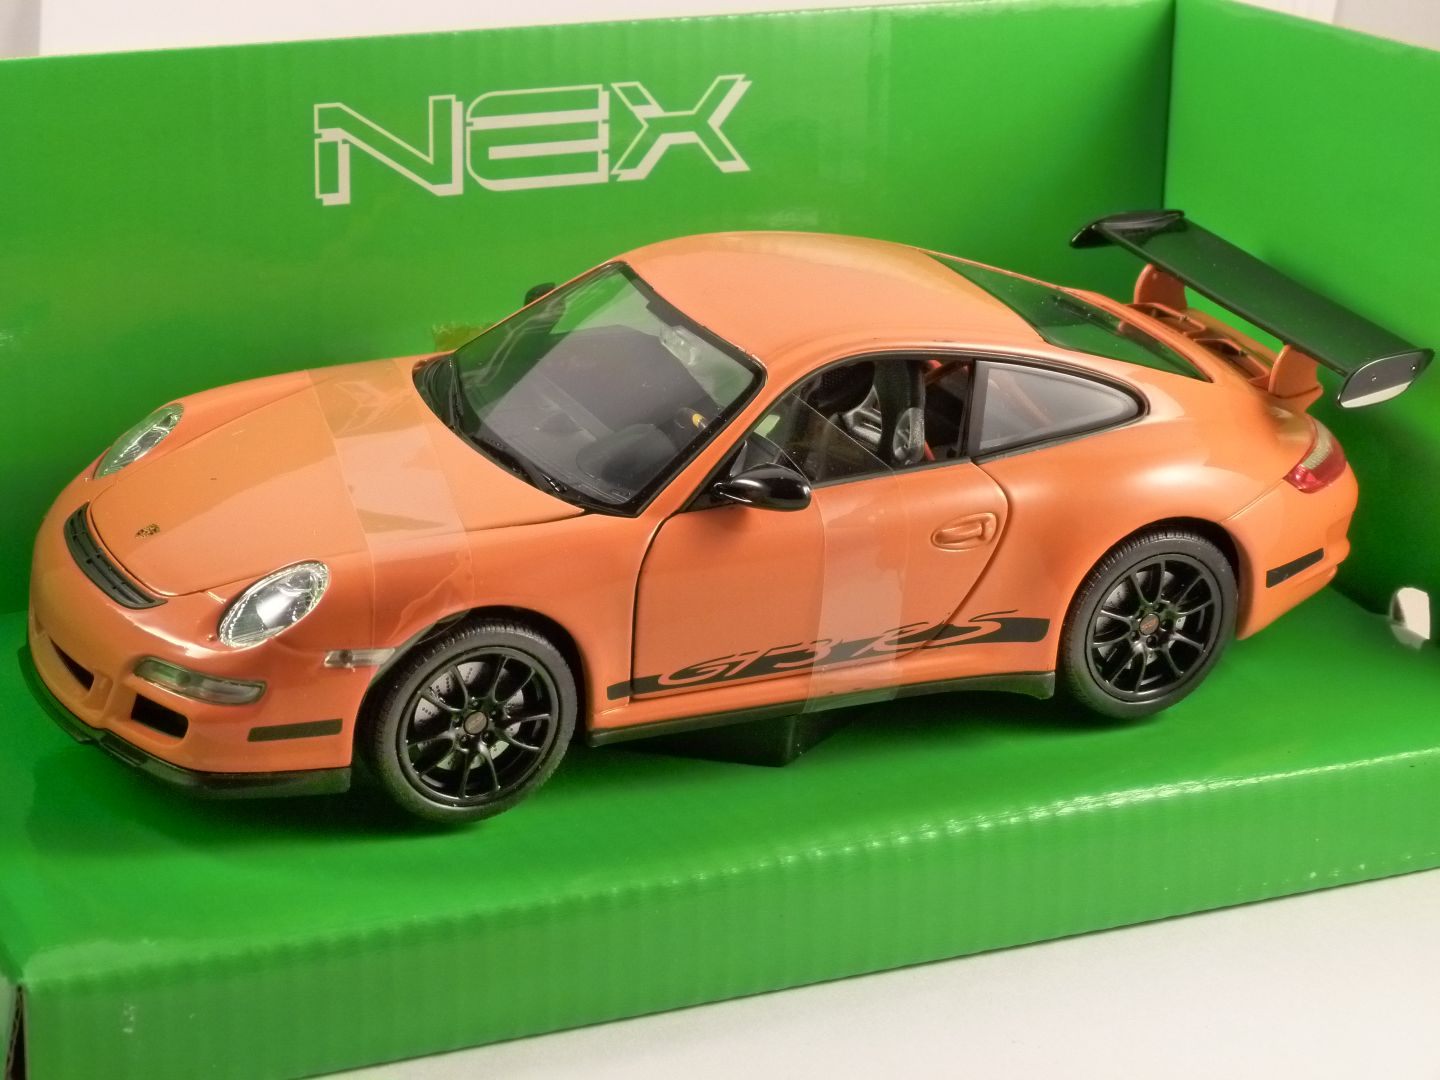 Porsche 911 Gt3 Rs 997 In Orange 1 24 Scale Model By Welly